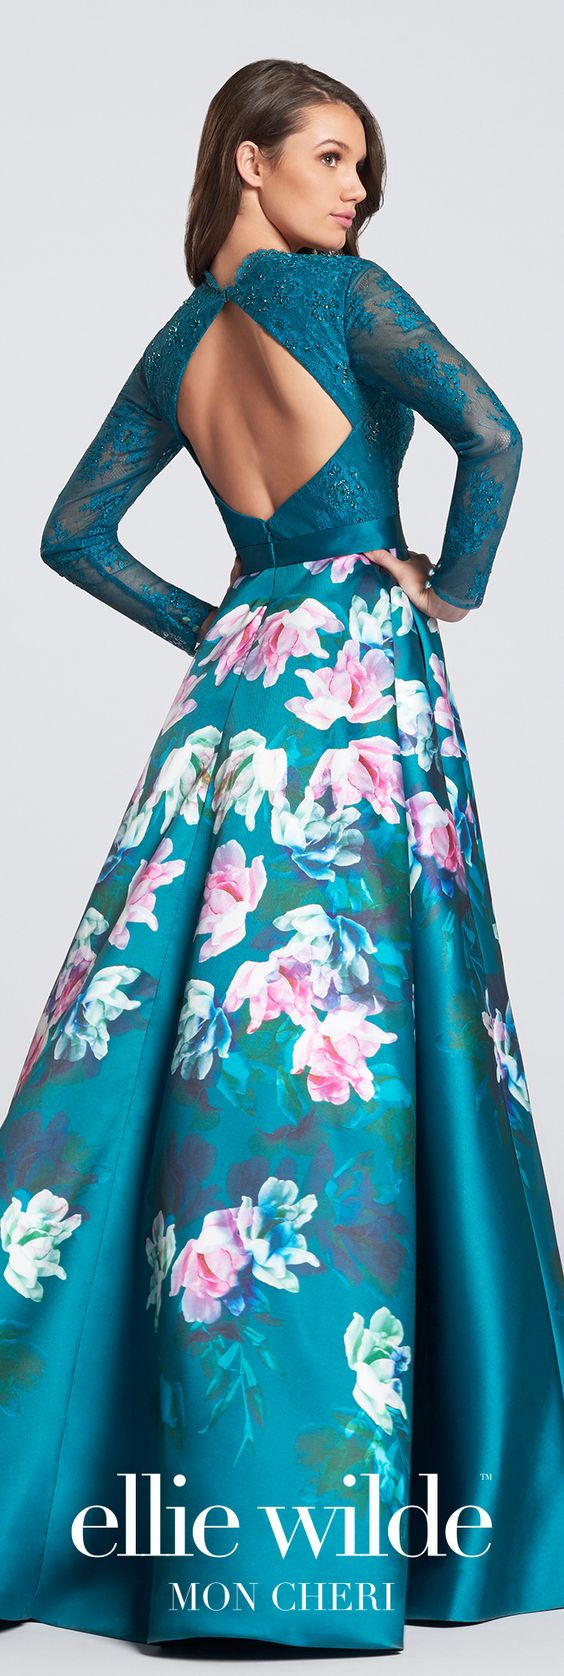 Long sleeve lace bodice floral print prom dress ellie wilde